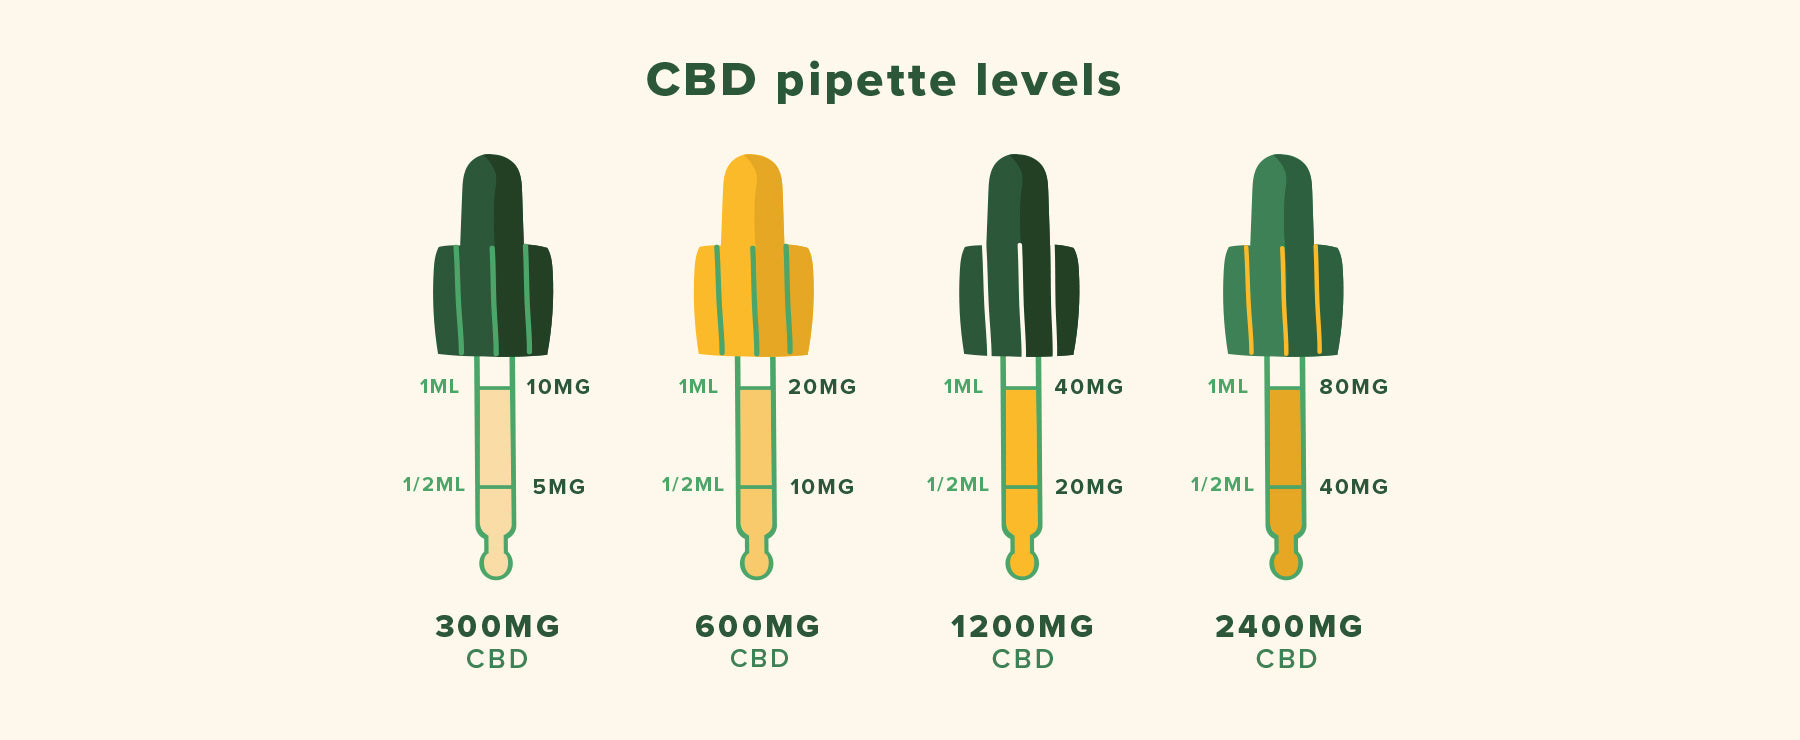 CBD pipette levels